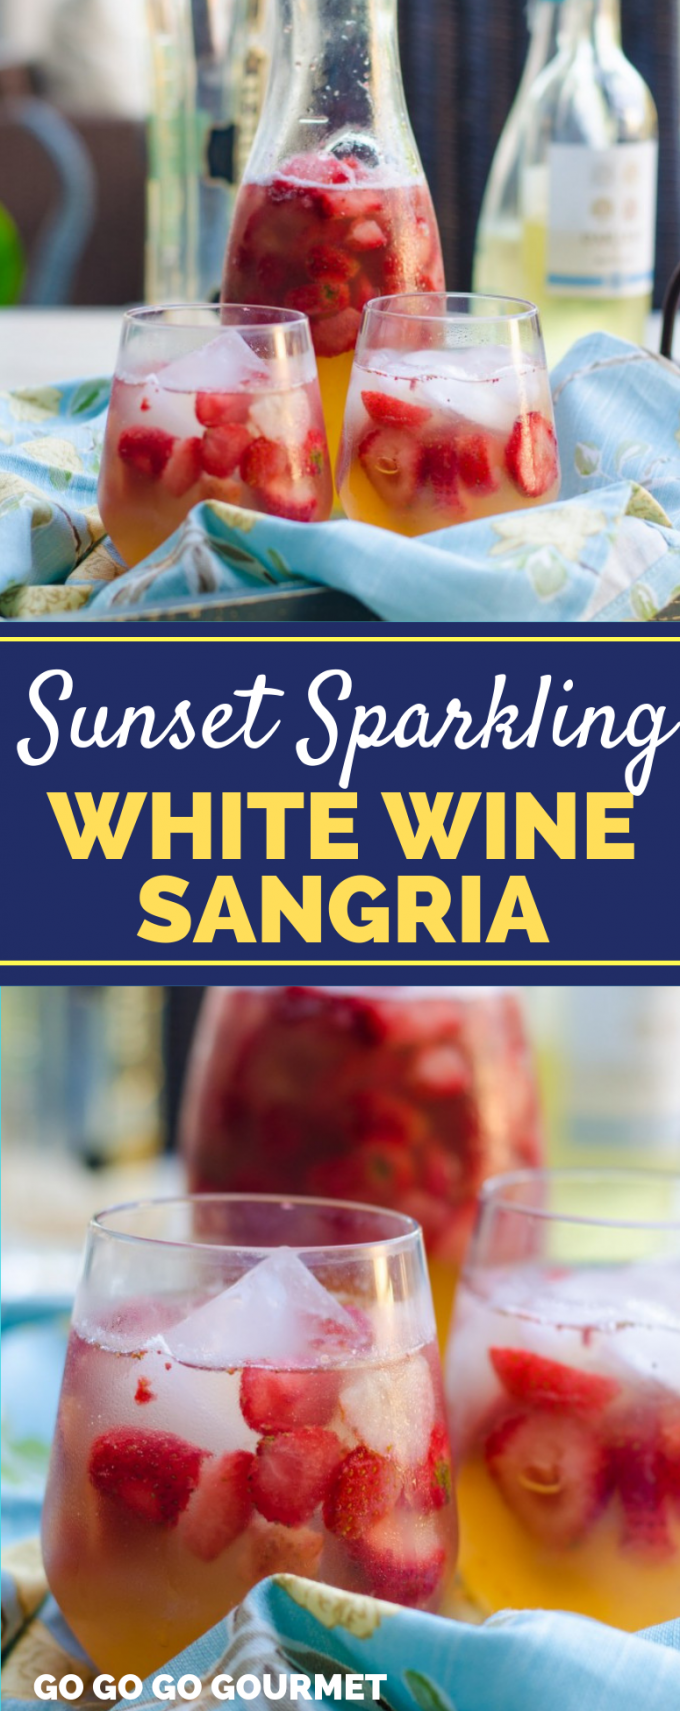 Summer pitcher drinks don't get any better than this Sunset Sparkling White Wine Sangria recipe! With lots of juice and fresh fruit, this will e your new favorite summer cocktail! #gogogogourmet #sunsetsparklingwhitewinesangria #easysangriarecipes #whitewinesangria via @gogogogourmet